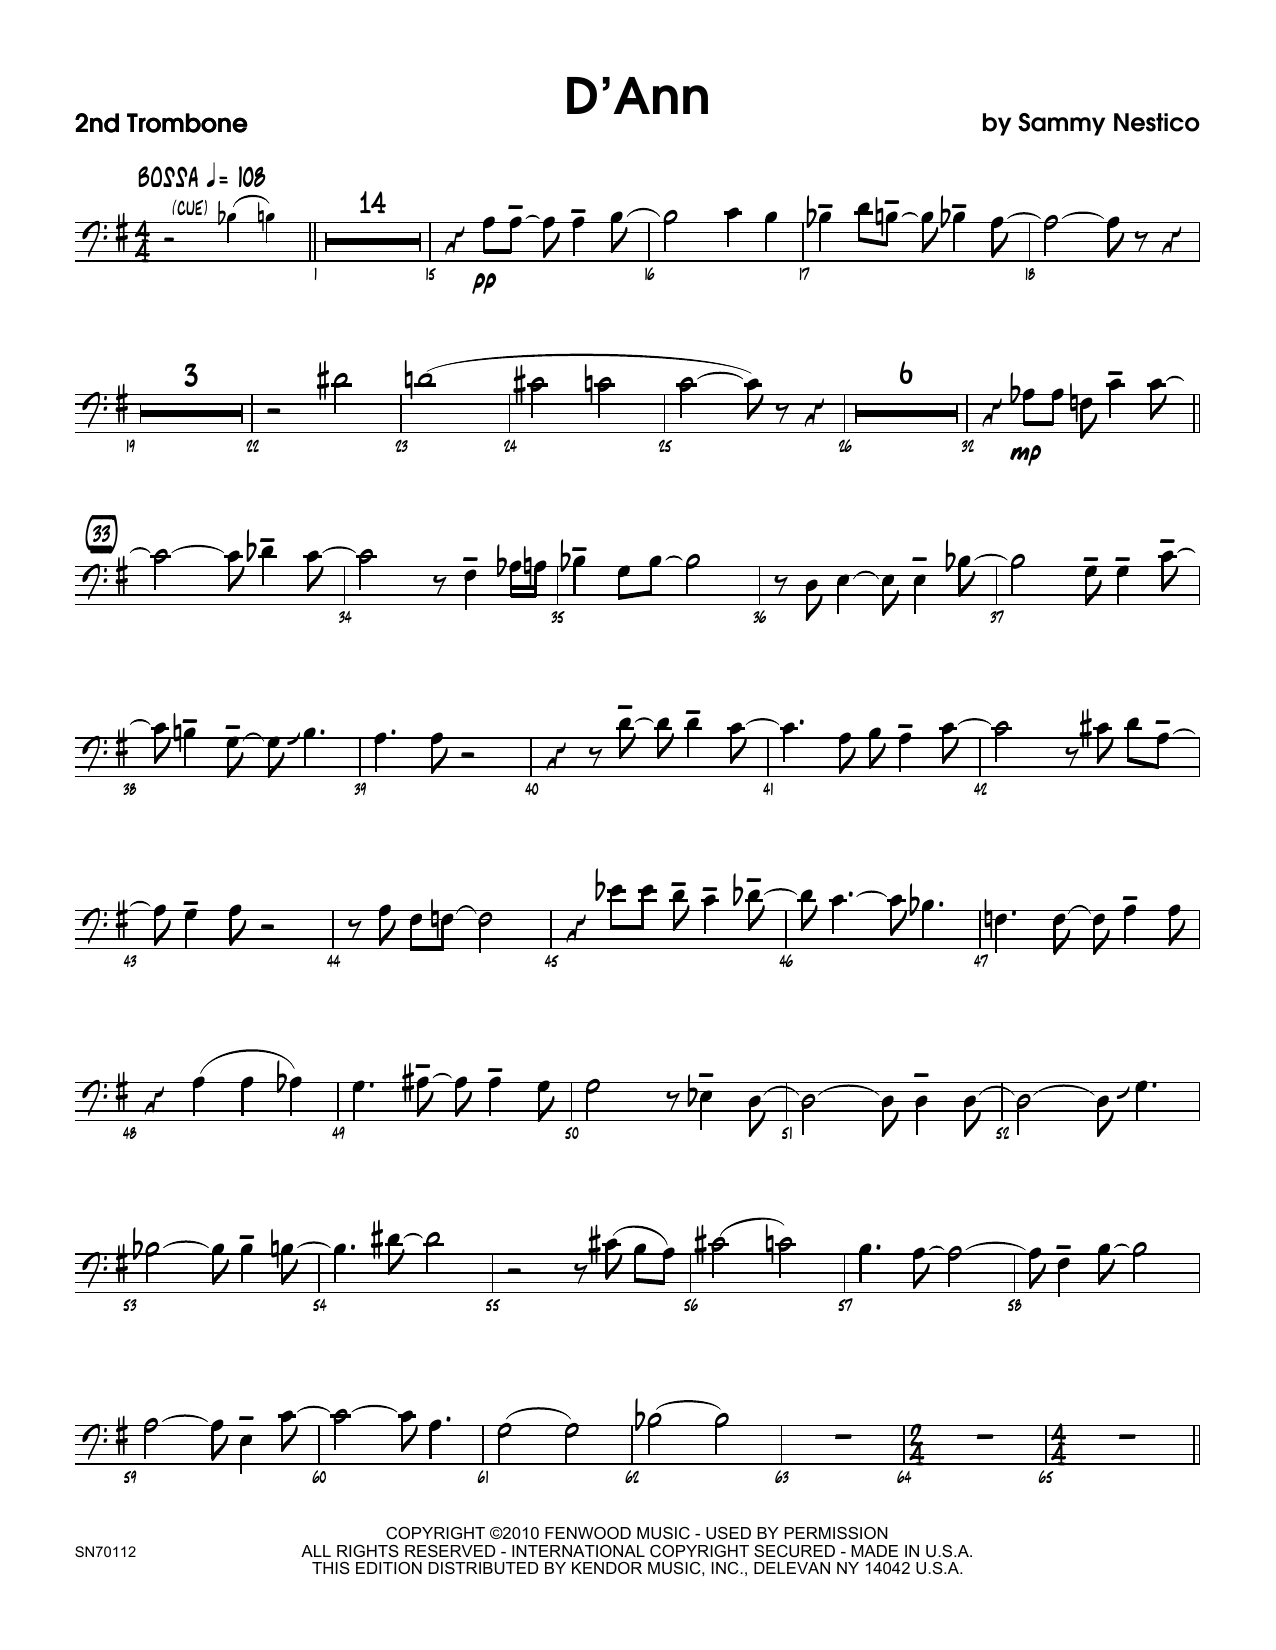 D'Ann - 2nd Trombone Sheet Music